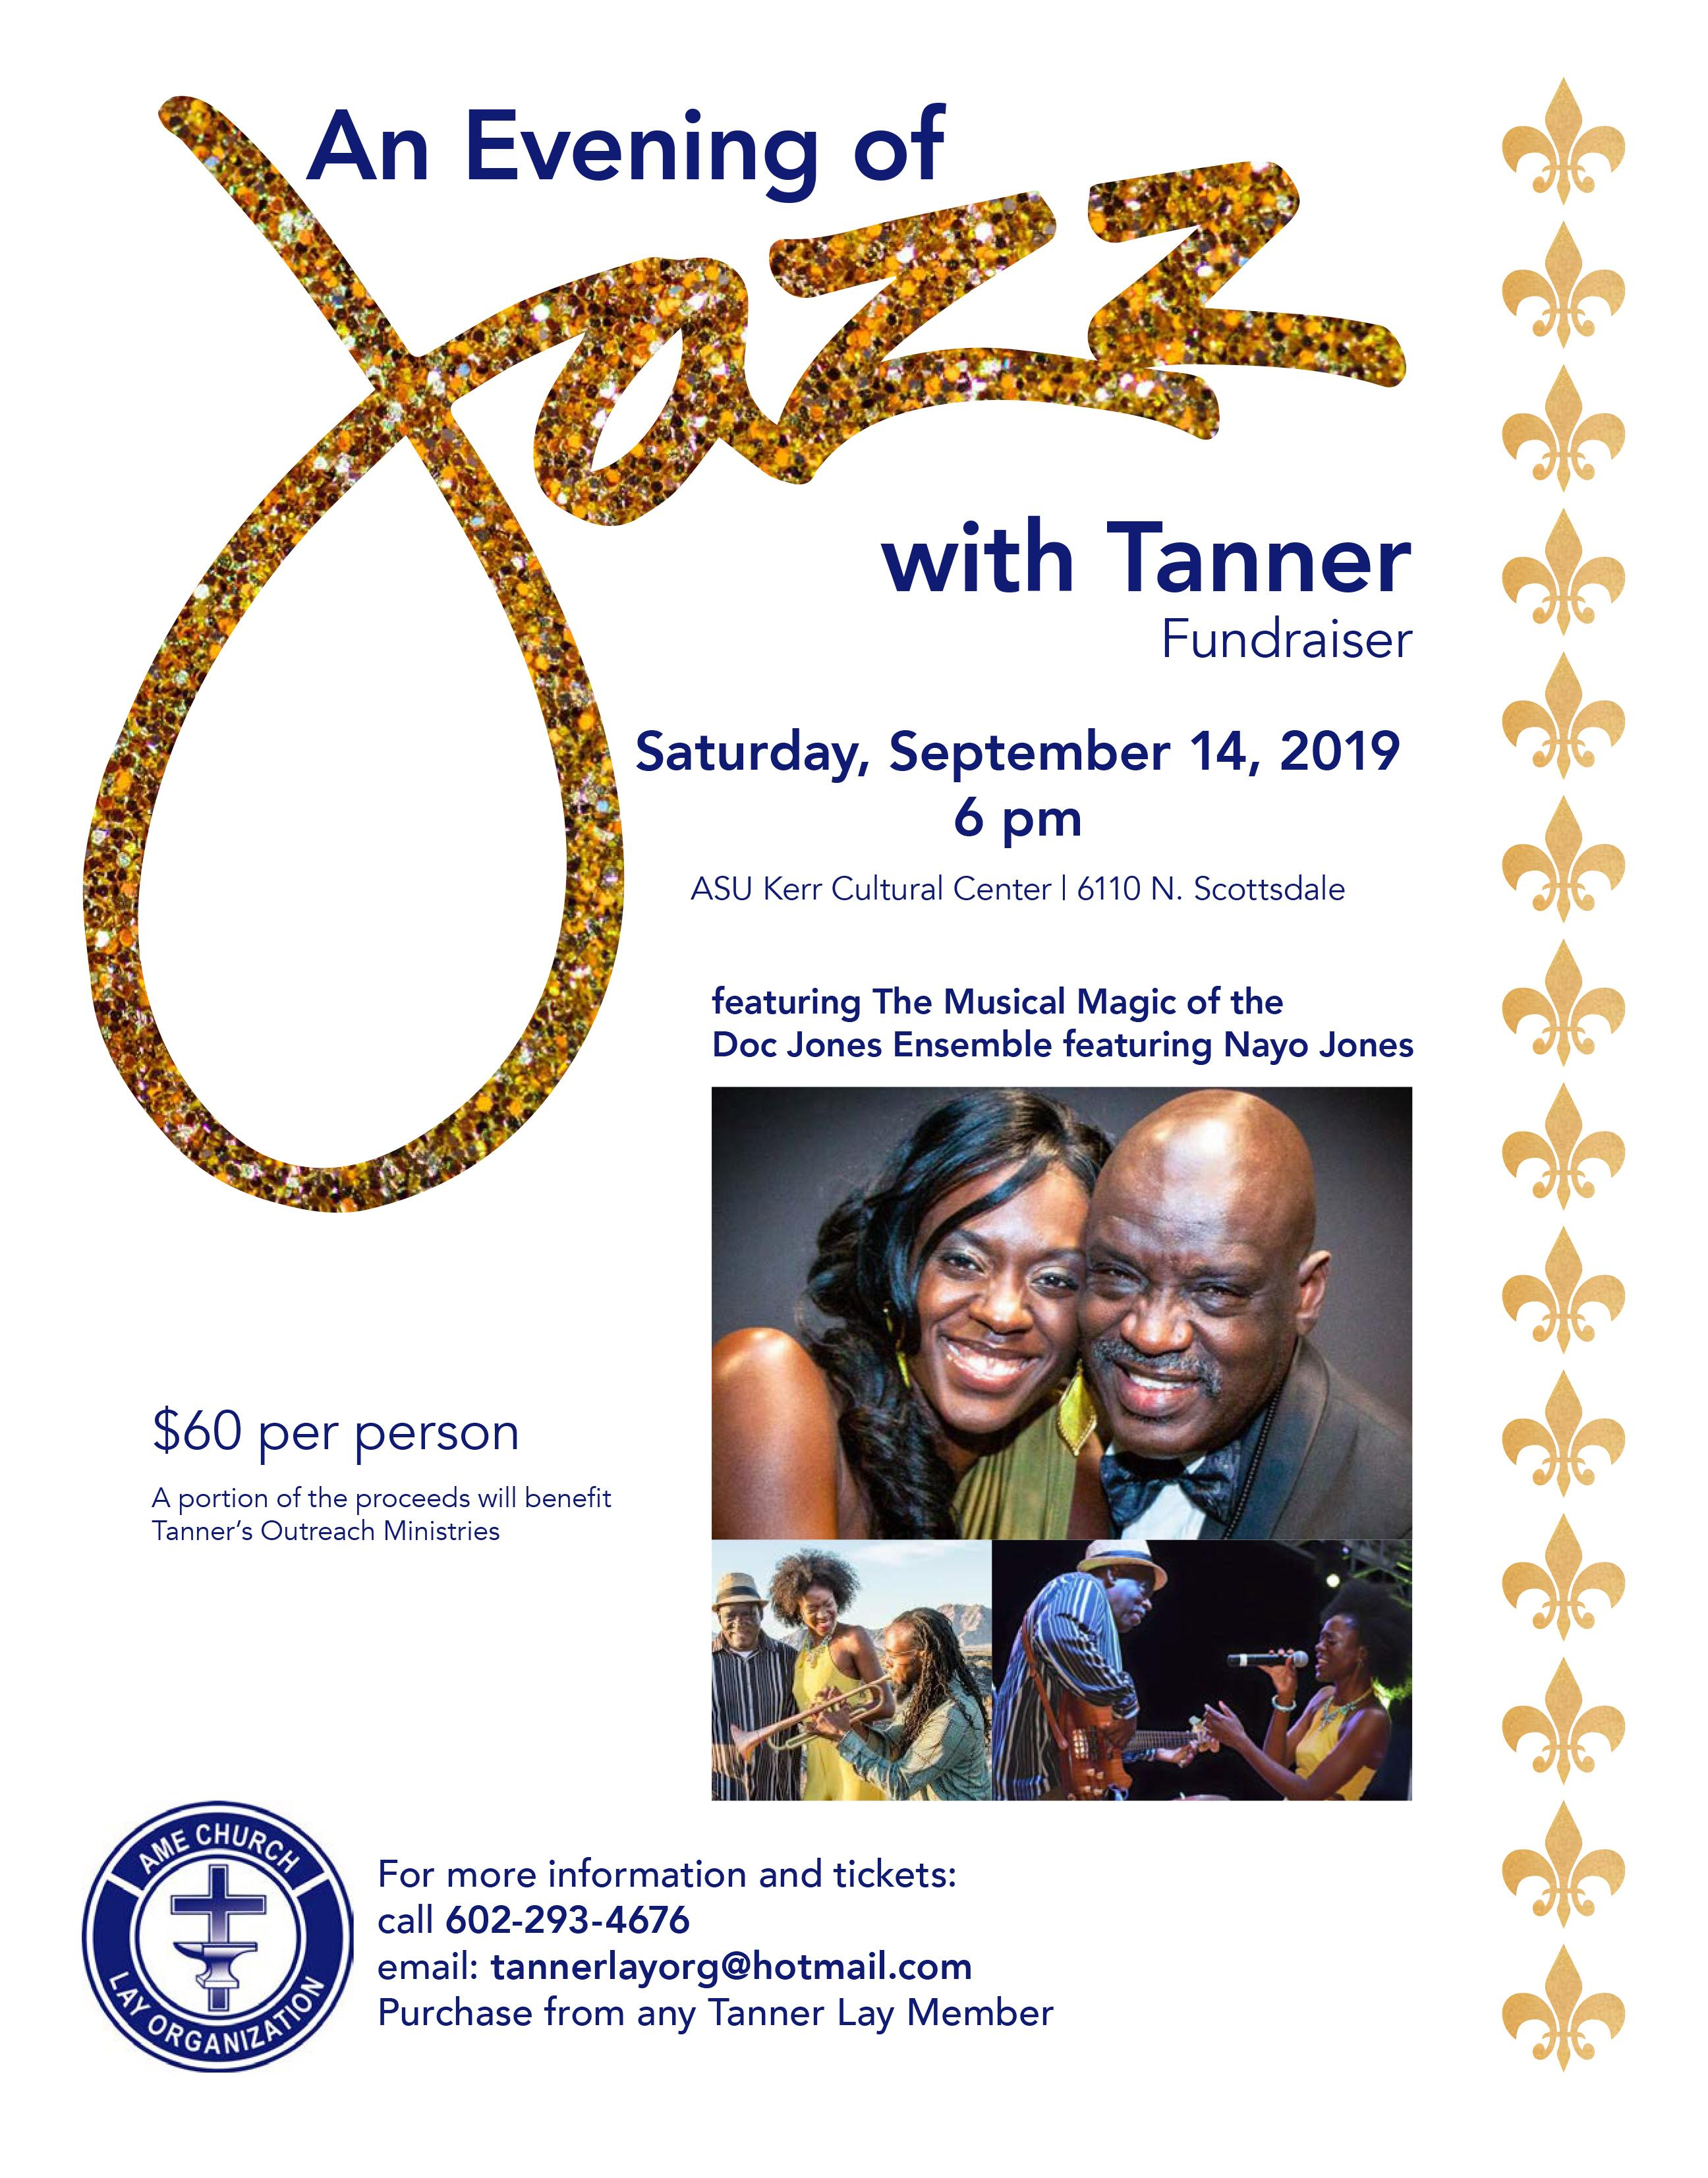 Flyer featuring Doc Jones and Nayo Jones - A Evening of Jazz with Tanner